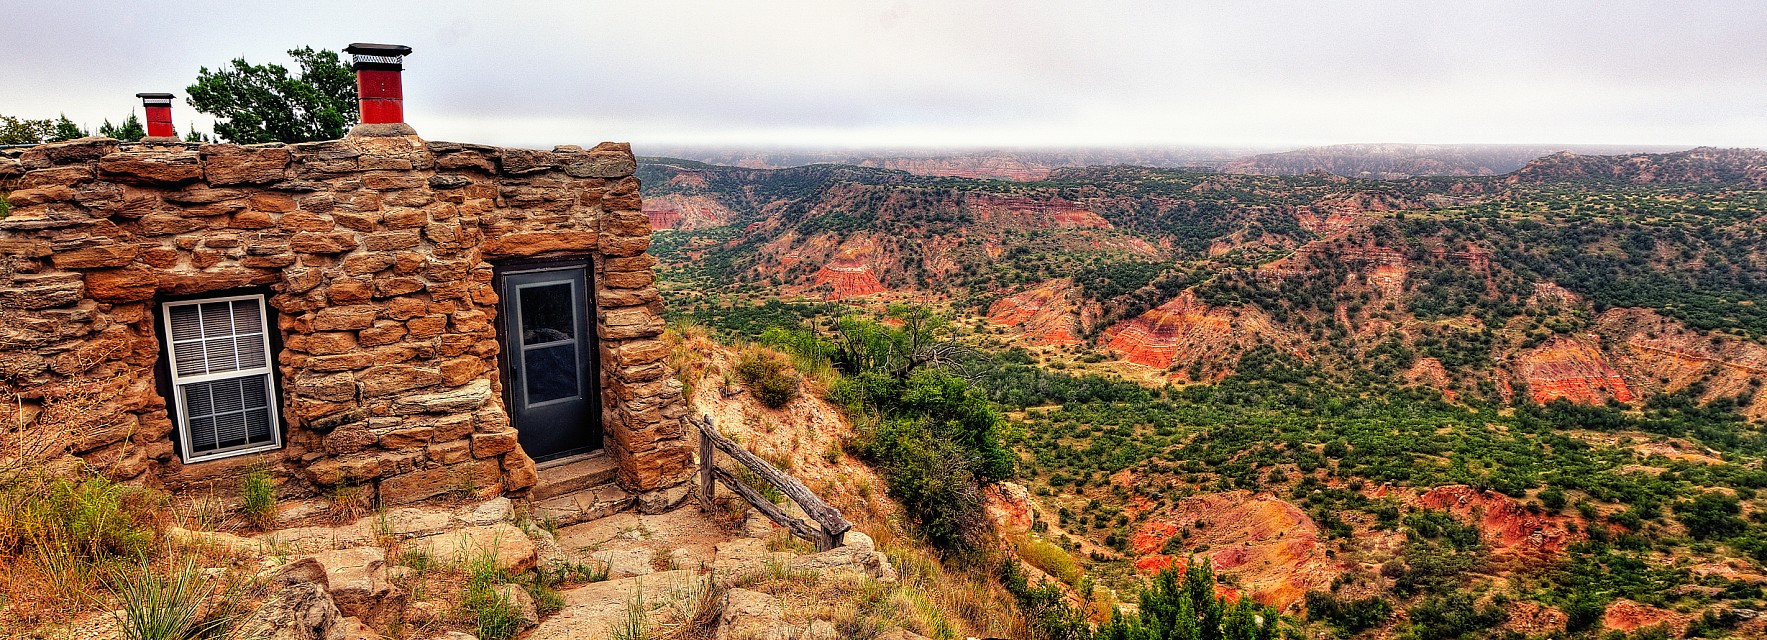 Room with a view - Palo Duro Canyon State Park